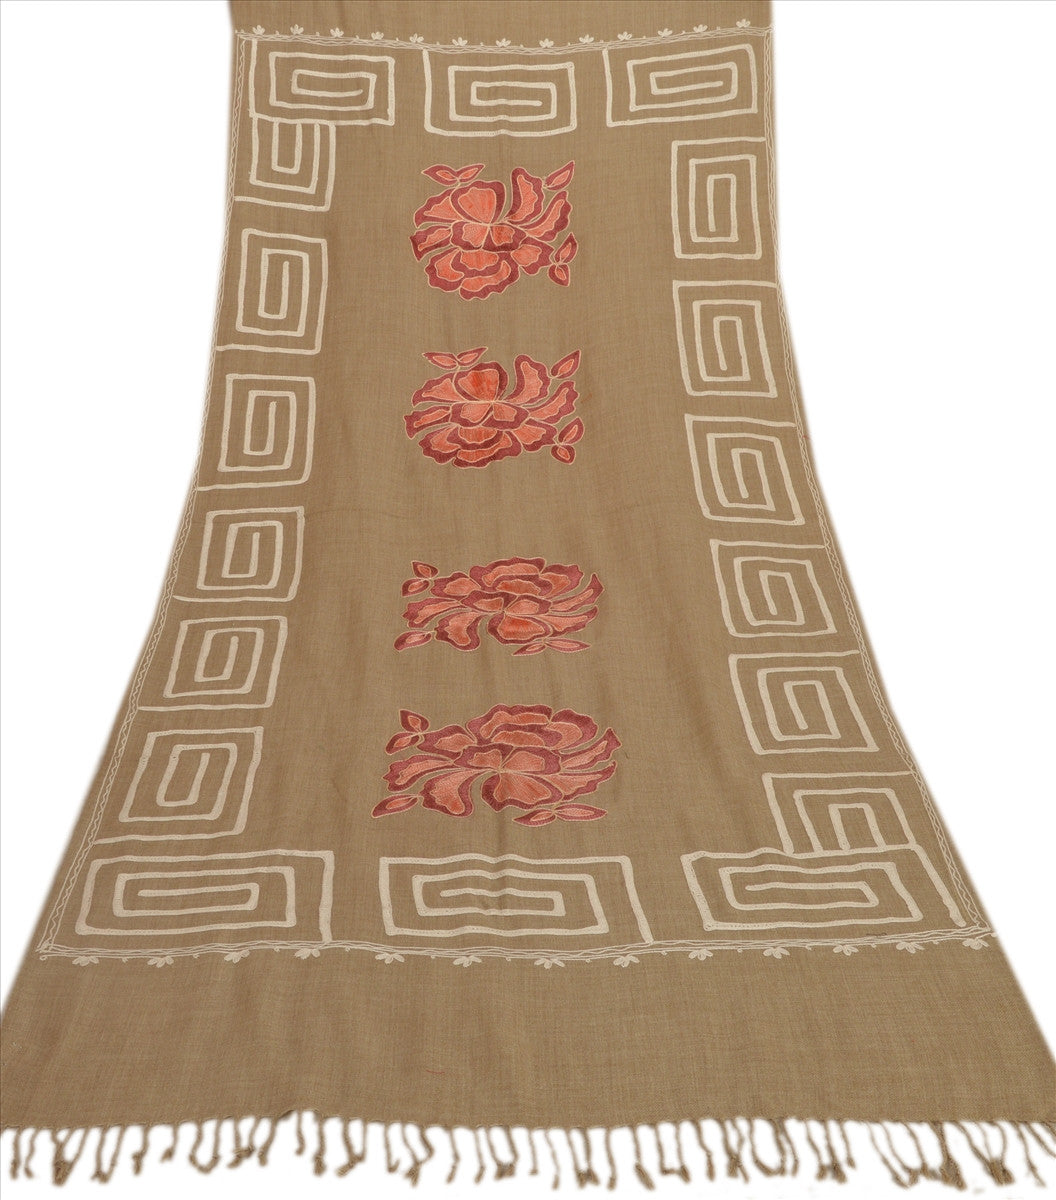 Multi Ari Zama New Hand Embroidered Kashmiri Shawl Scarf Viscose Stole Beige